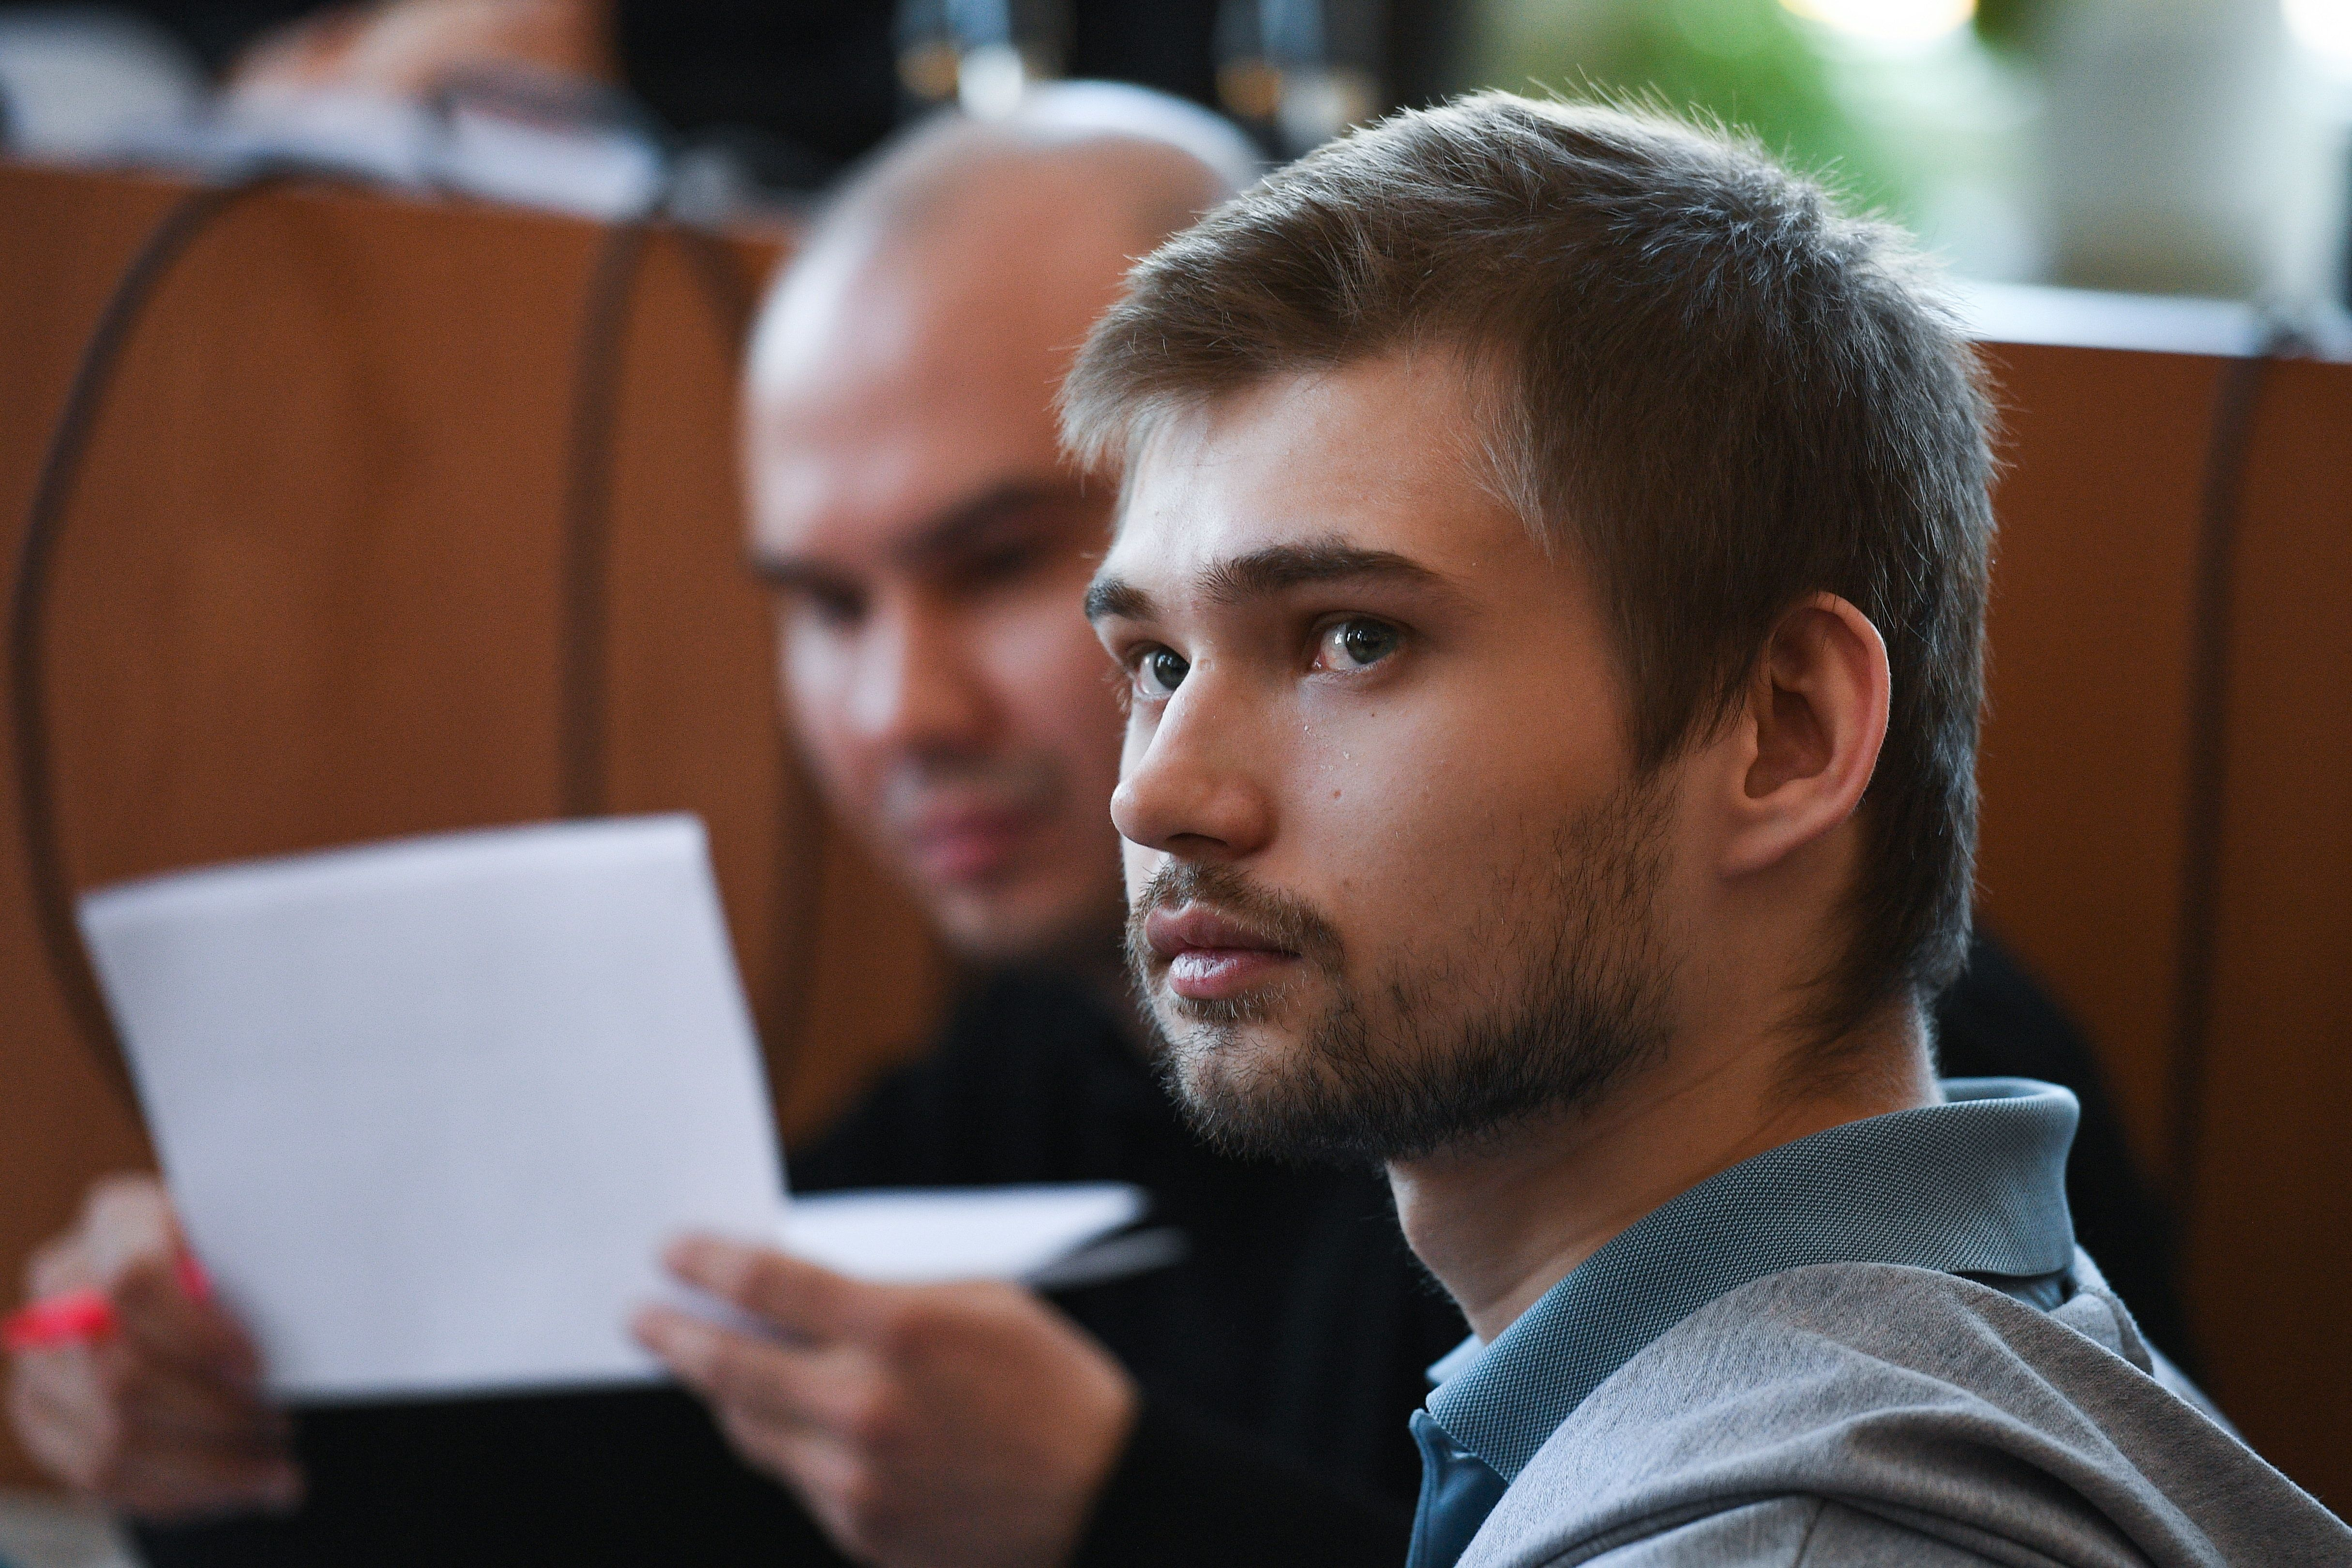 Blogger Ruslan Sokolovsky wasaccused of extremism and offending religious